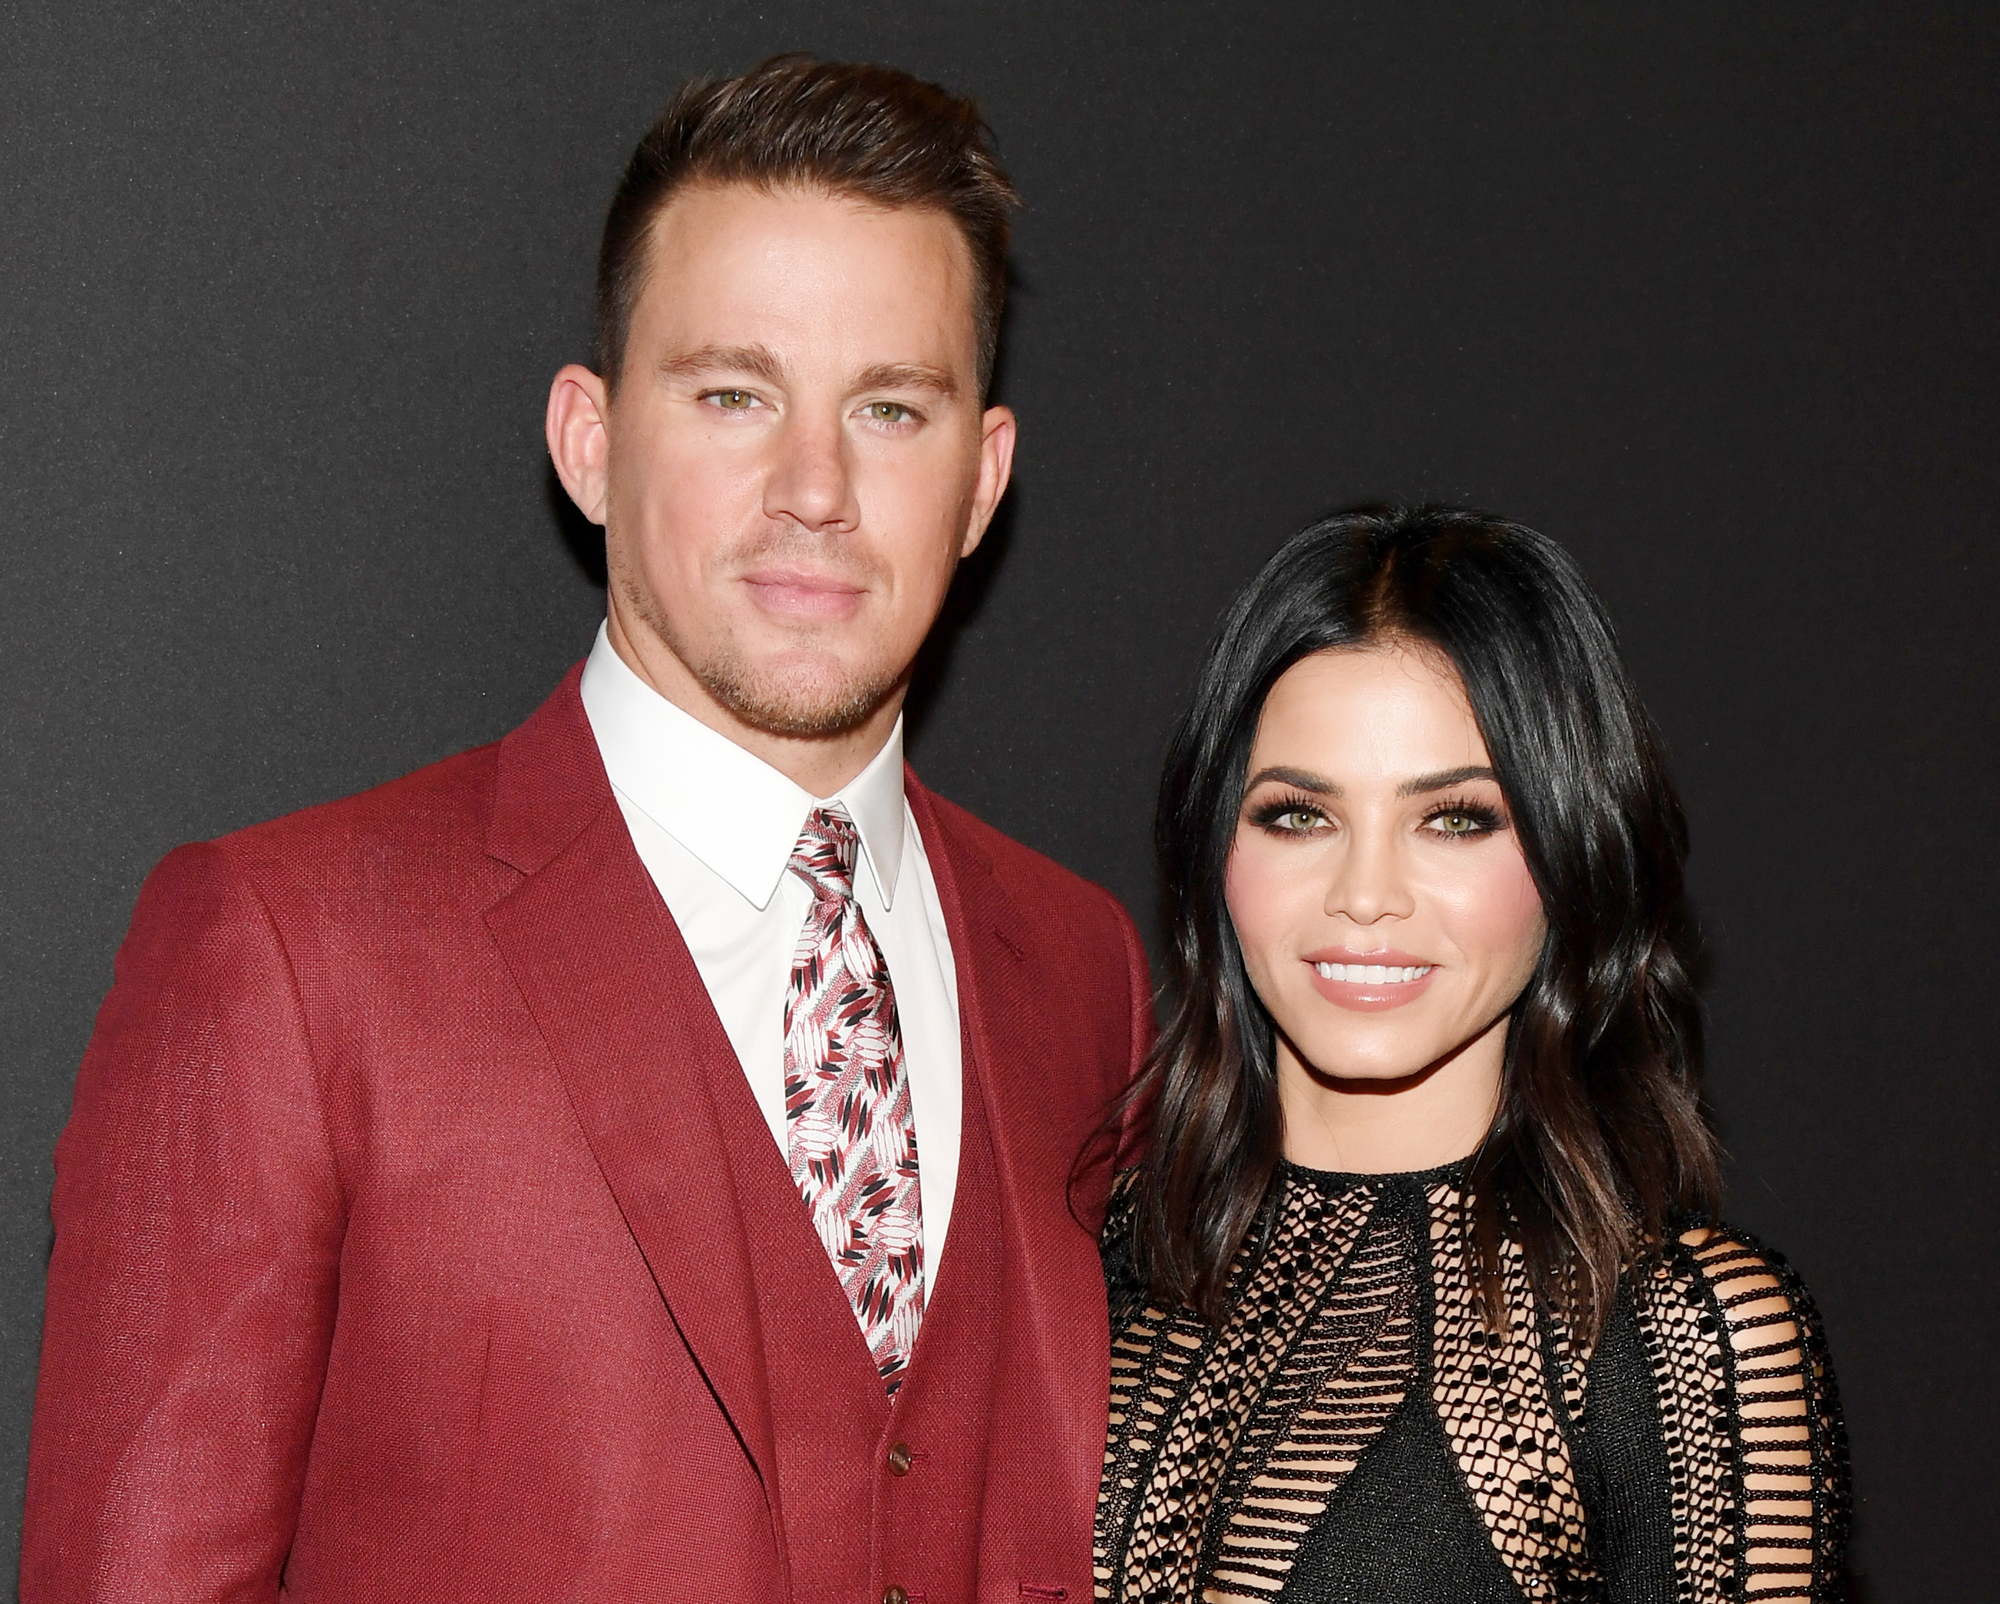 There Was a Big Hint That Jenna Dewan and Channing Tatum Would Break Up